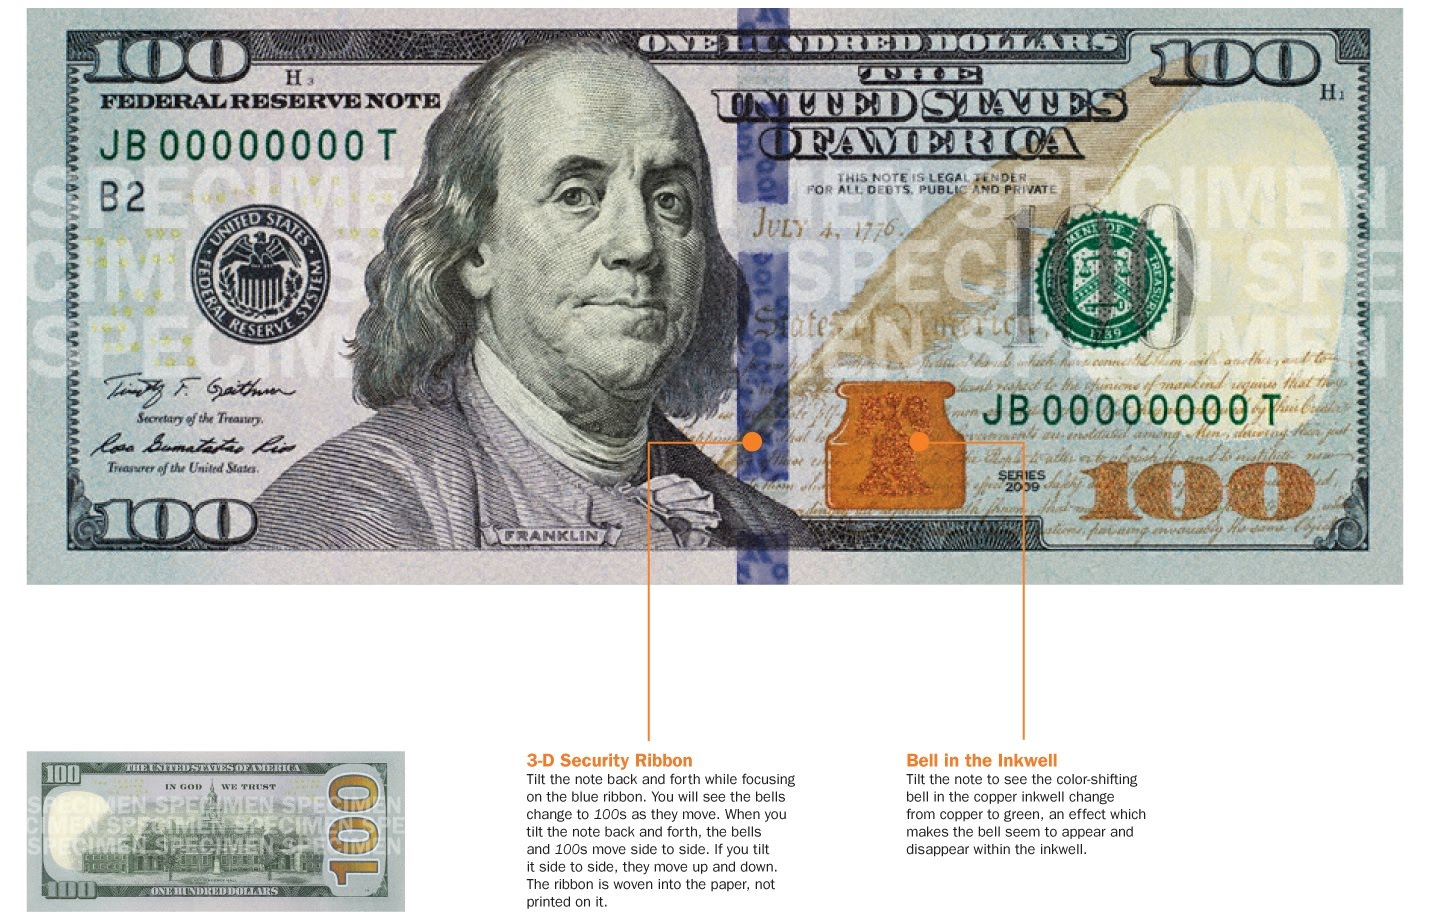 1977 100 dollar bill security features - How To Detect Counterfeit 100 Notes